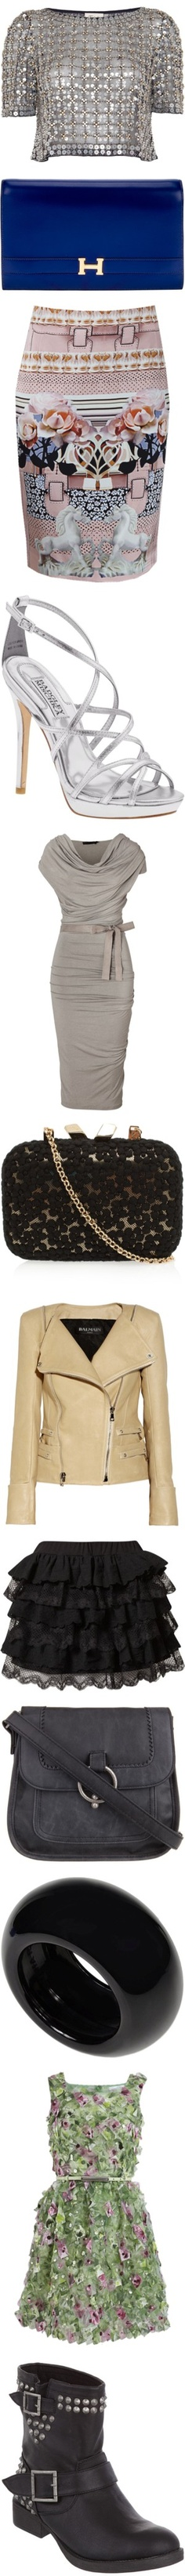 """""""Top Products for Mar 6th, 2013"""" by polyvore ❤ liked on Polyvore"""